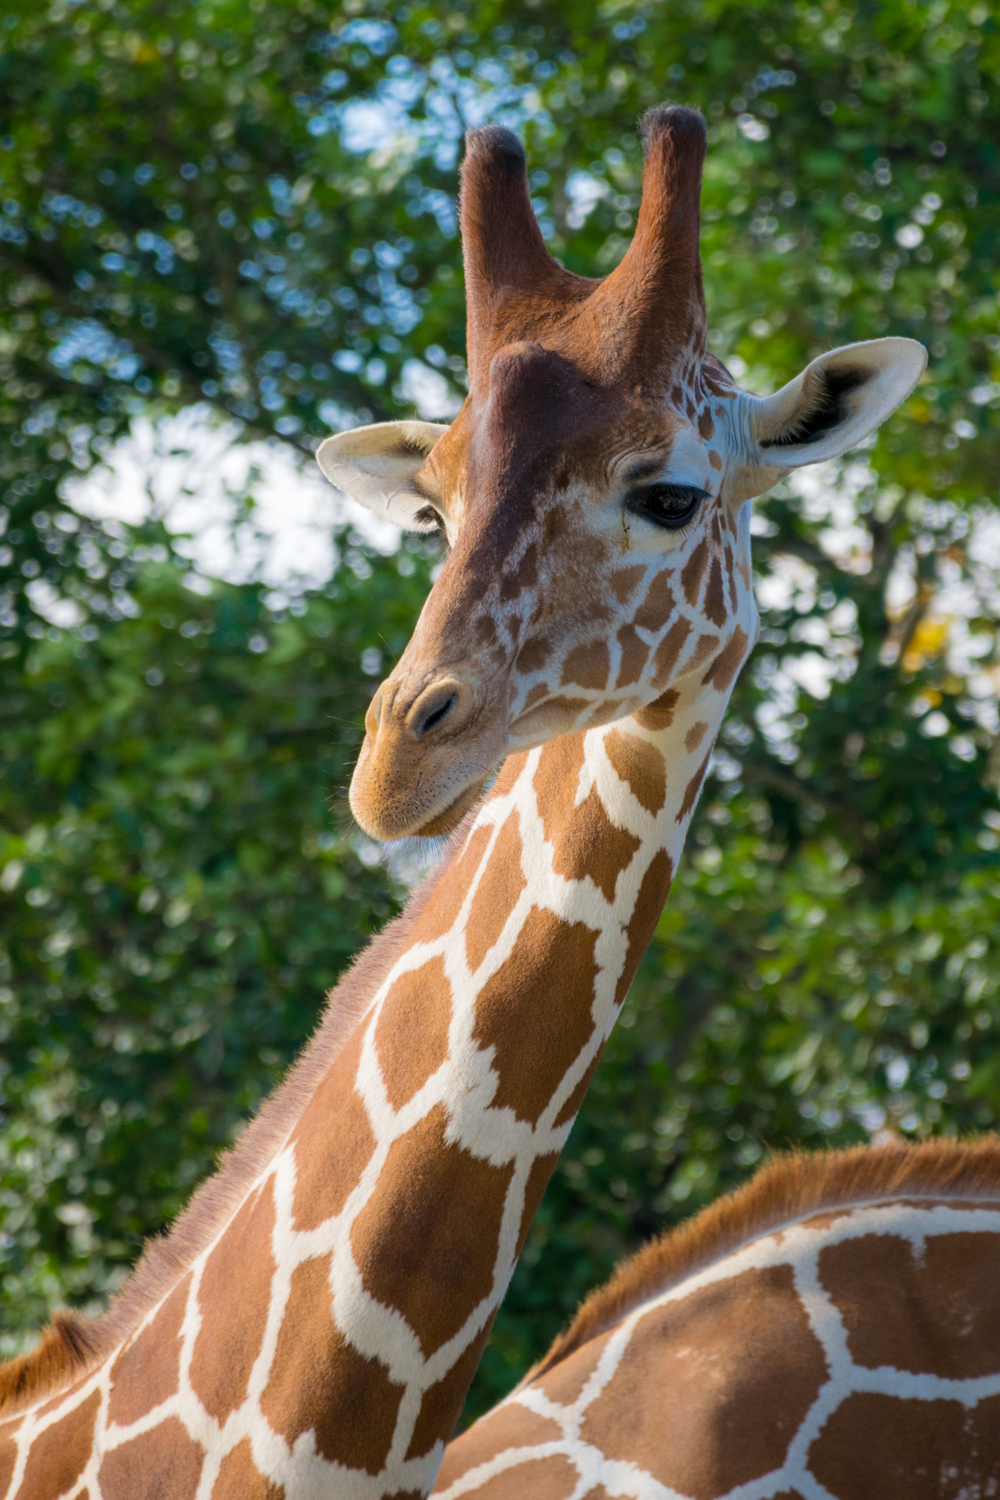 A  giraffe  posing for me